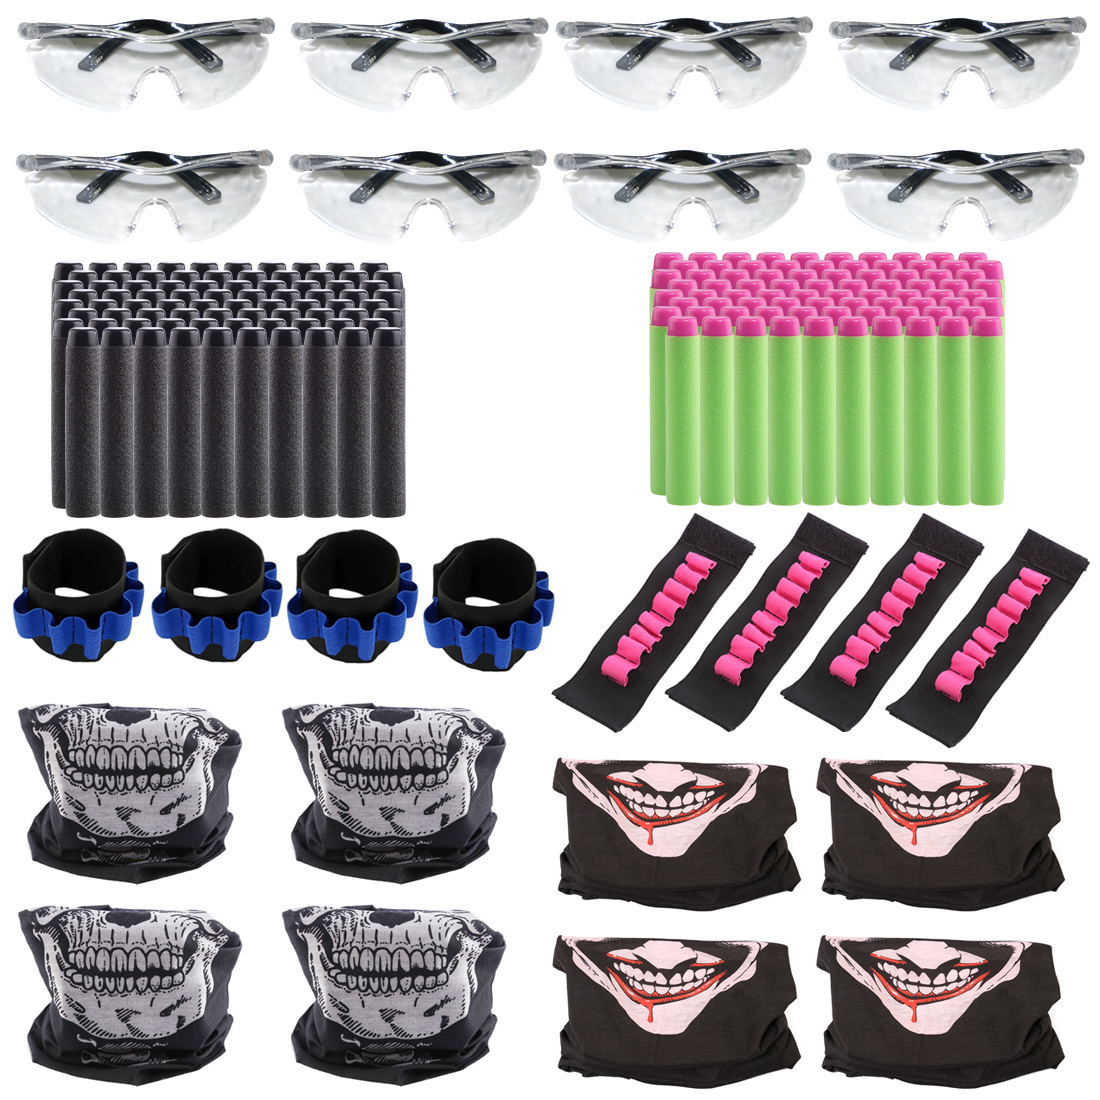 8 Kids Breathable Tactical Equipment Party Suppliers For For Nerf Nstrike Elite Bullet Wristband Mask For Nerf CS Battle Cosplay